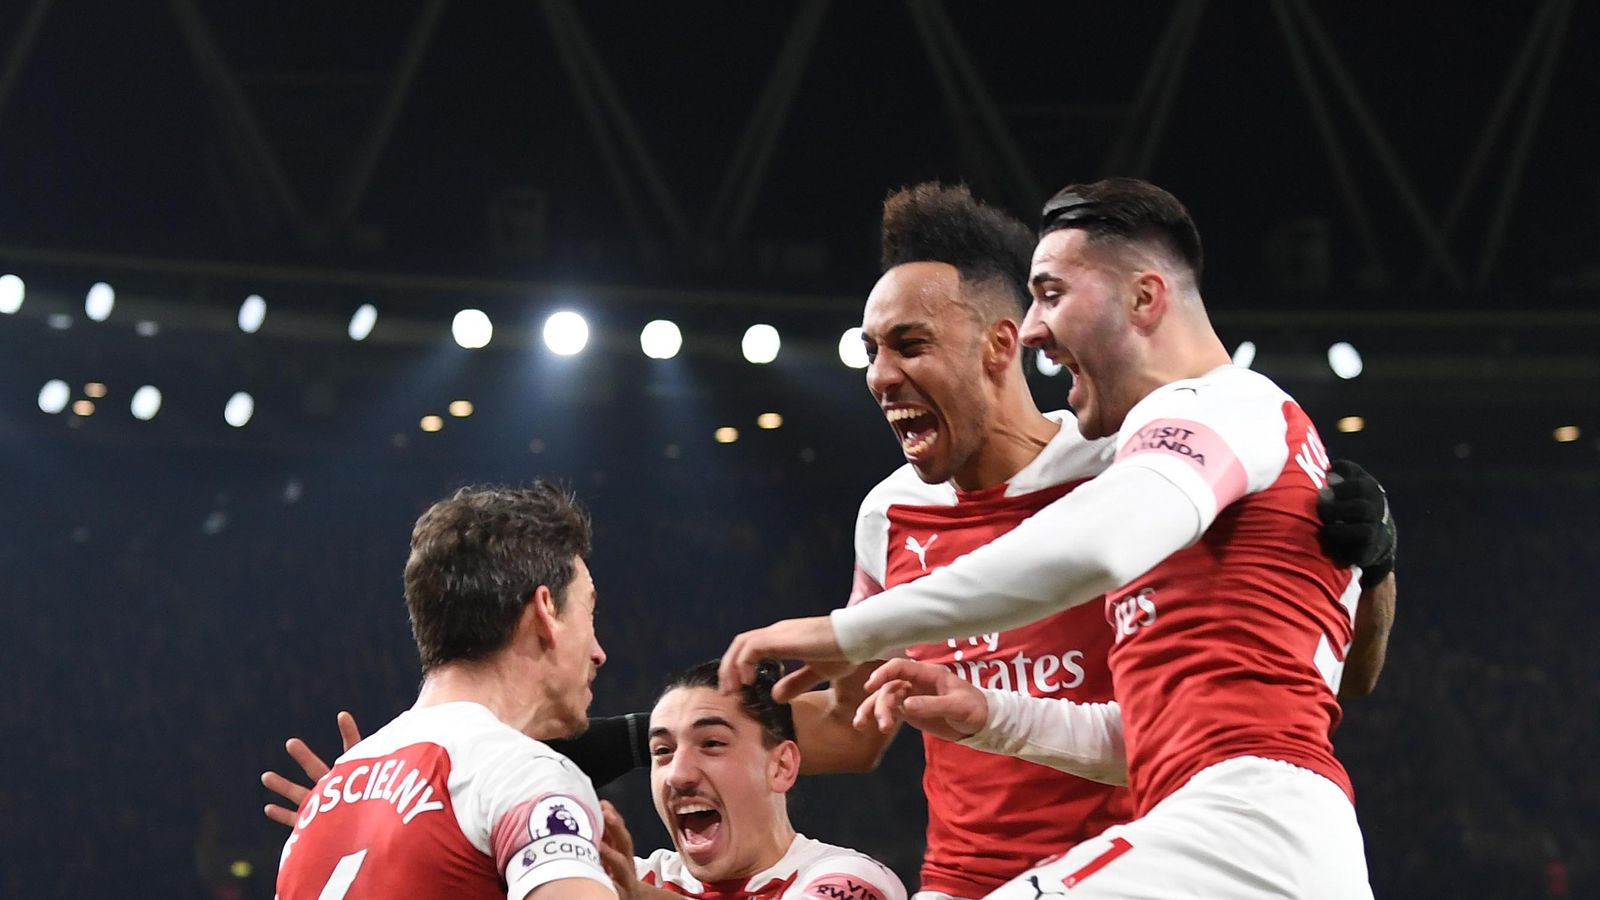 Arsenal 2 - 0 Chelsea - Match Report & Highlights